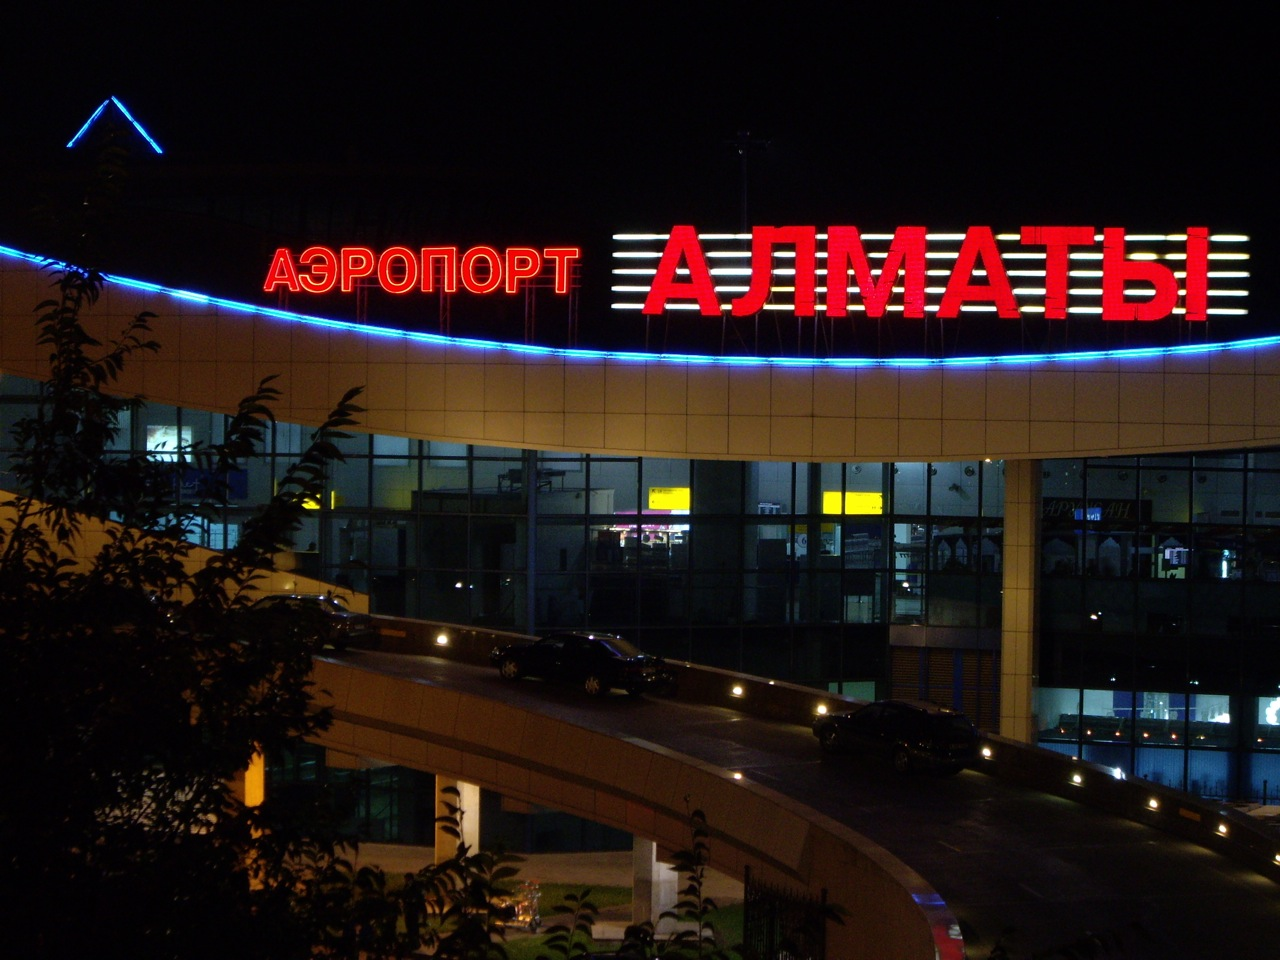 Almaty Aéroport ADP TAV Airports Agrandissement Accord